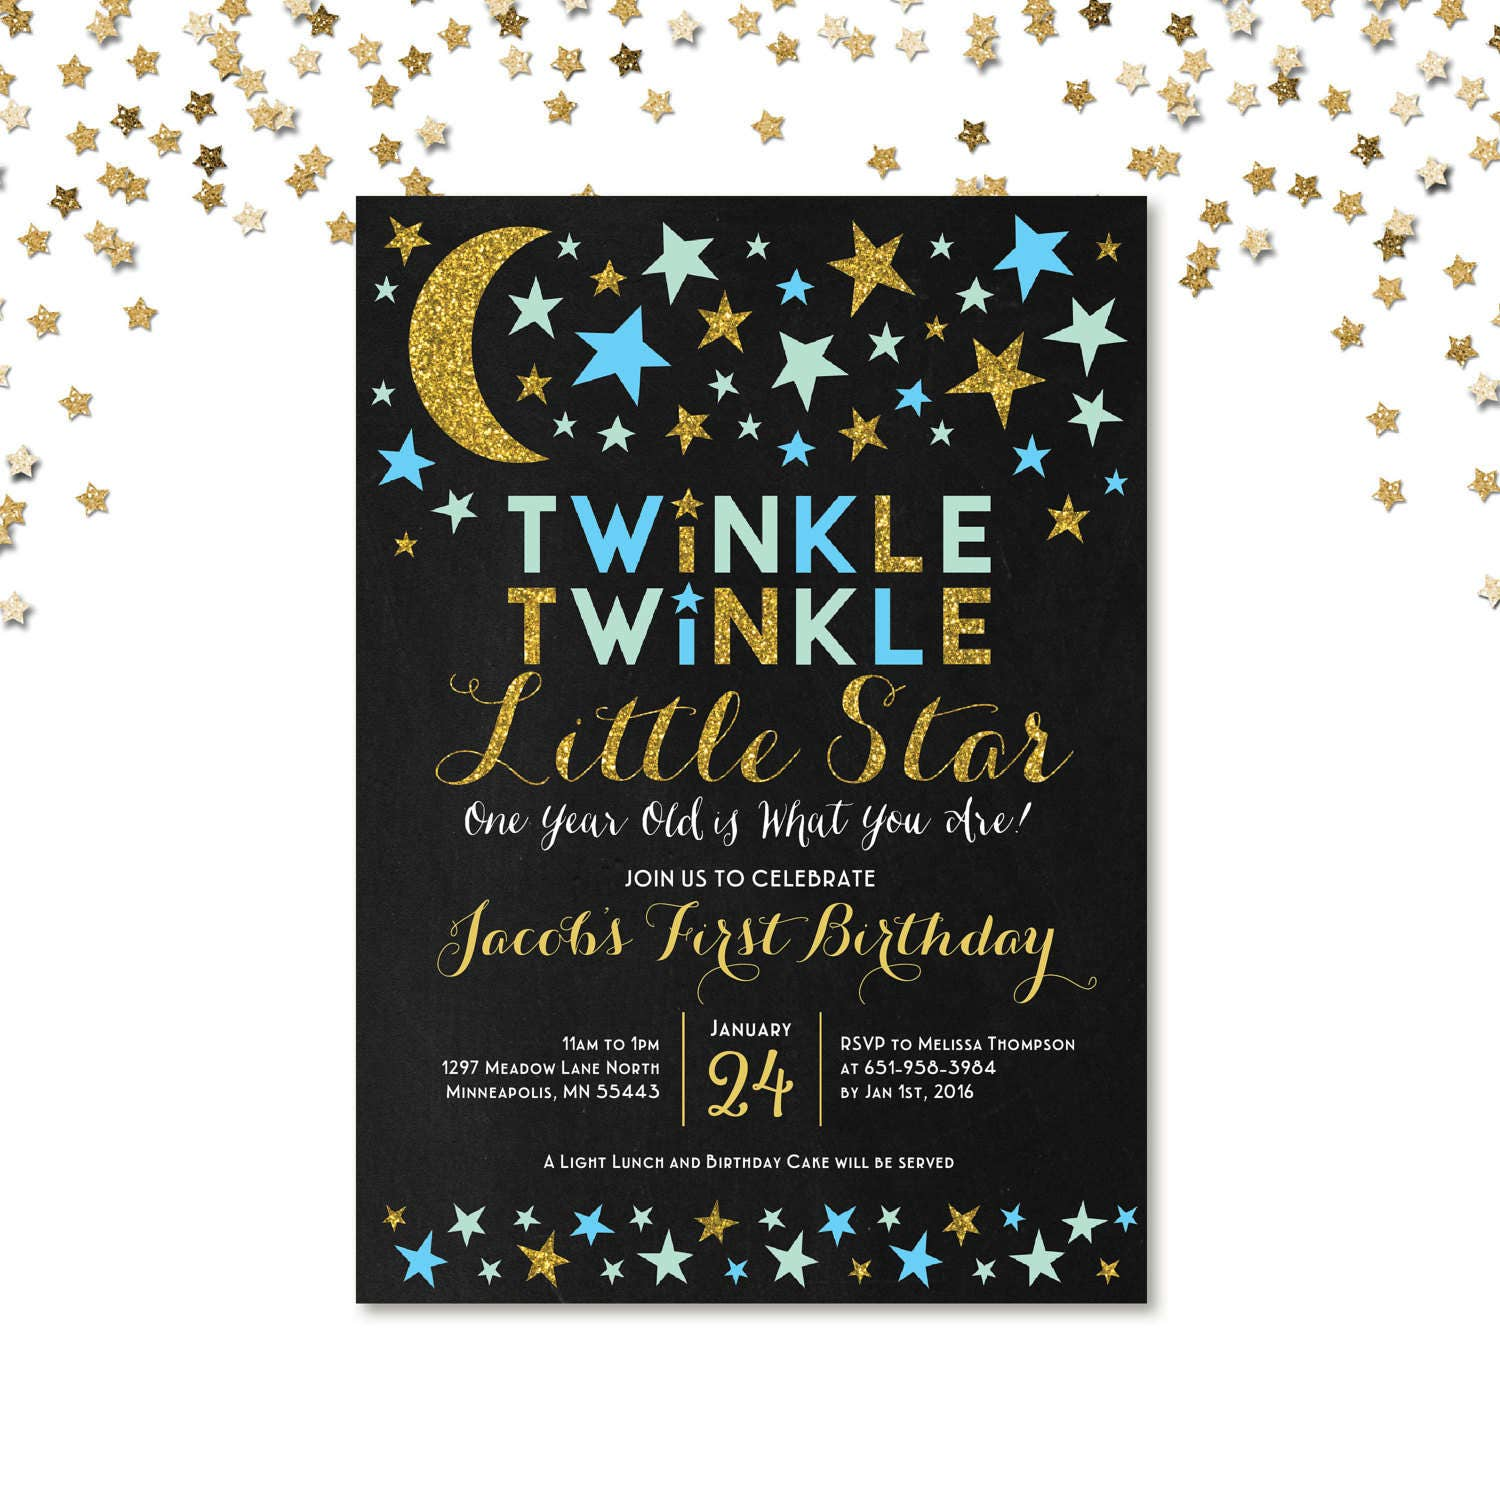 twinkle twinkle little star first birthday invitation blue and